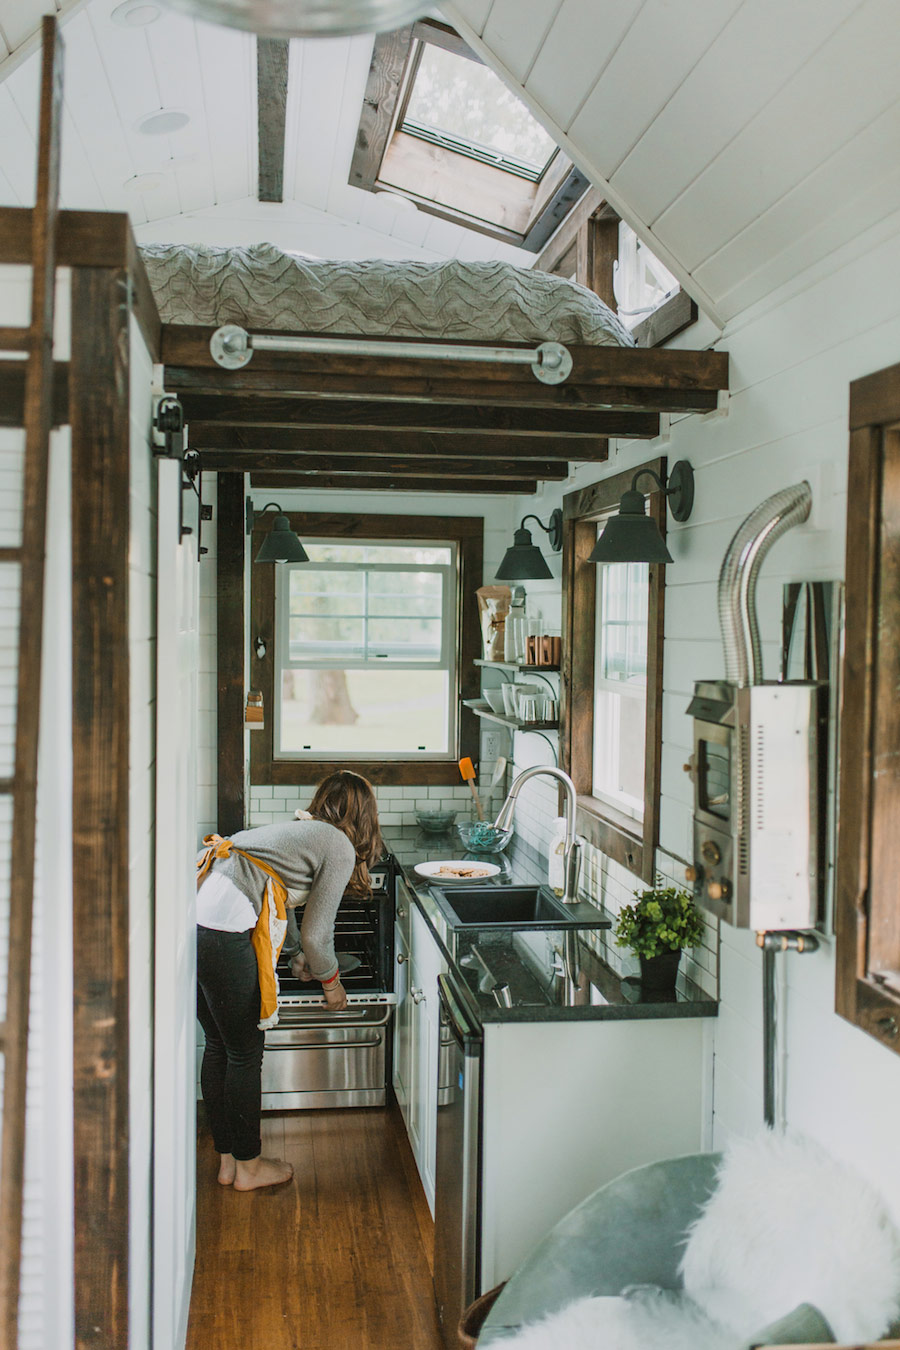 Heirloom Tiny Home – Tiny House Swoon